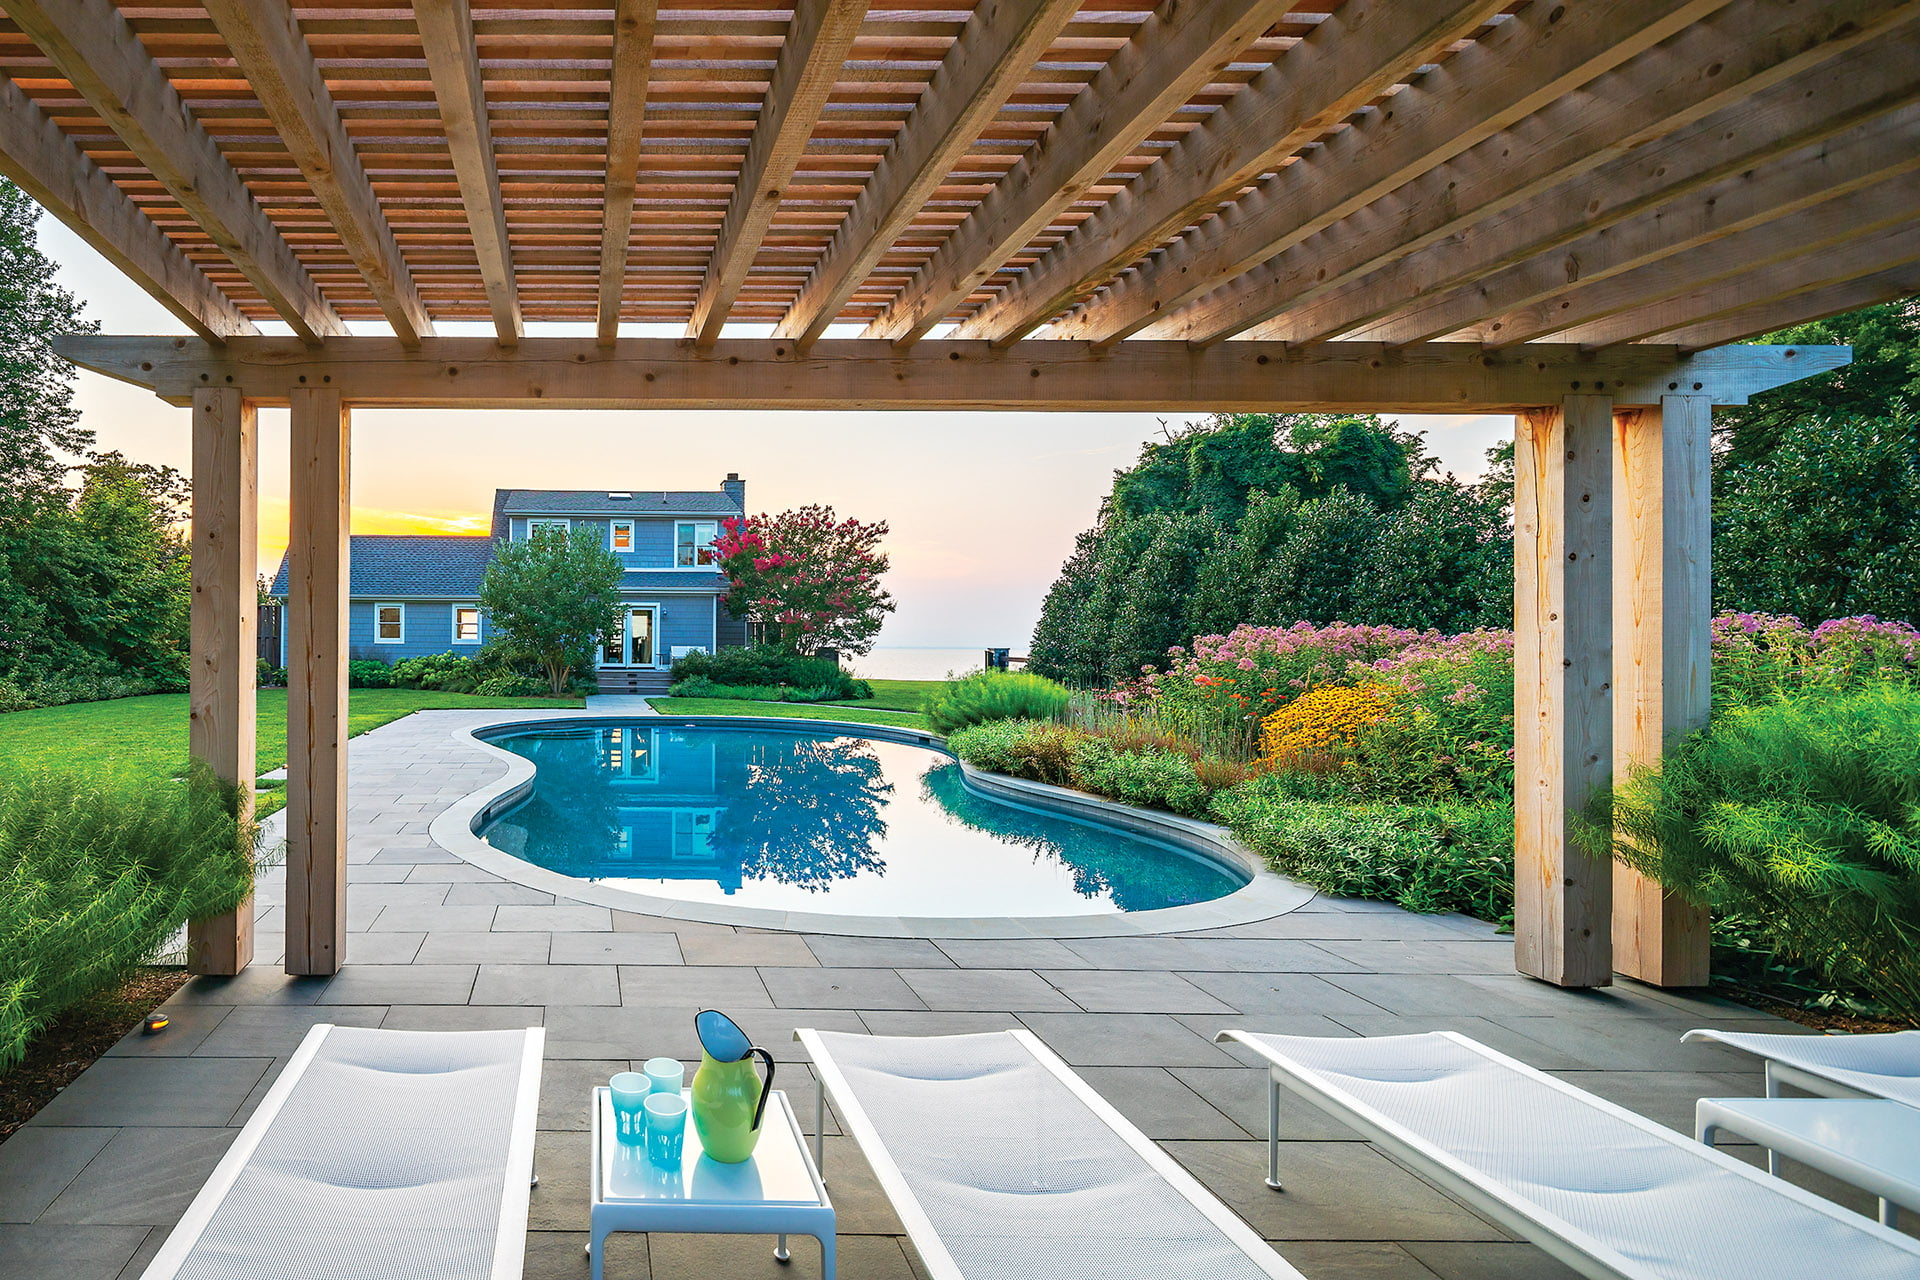 Pergola lounge area by pool, house and bay.